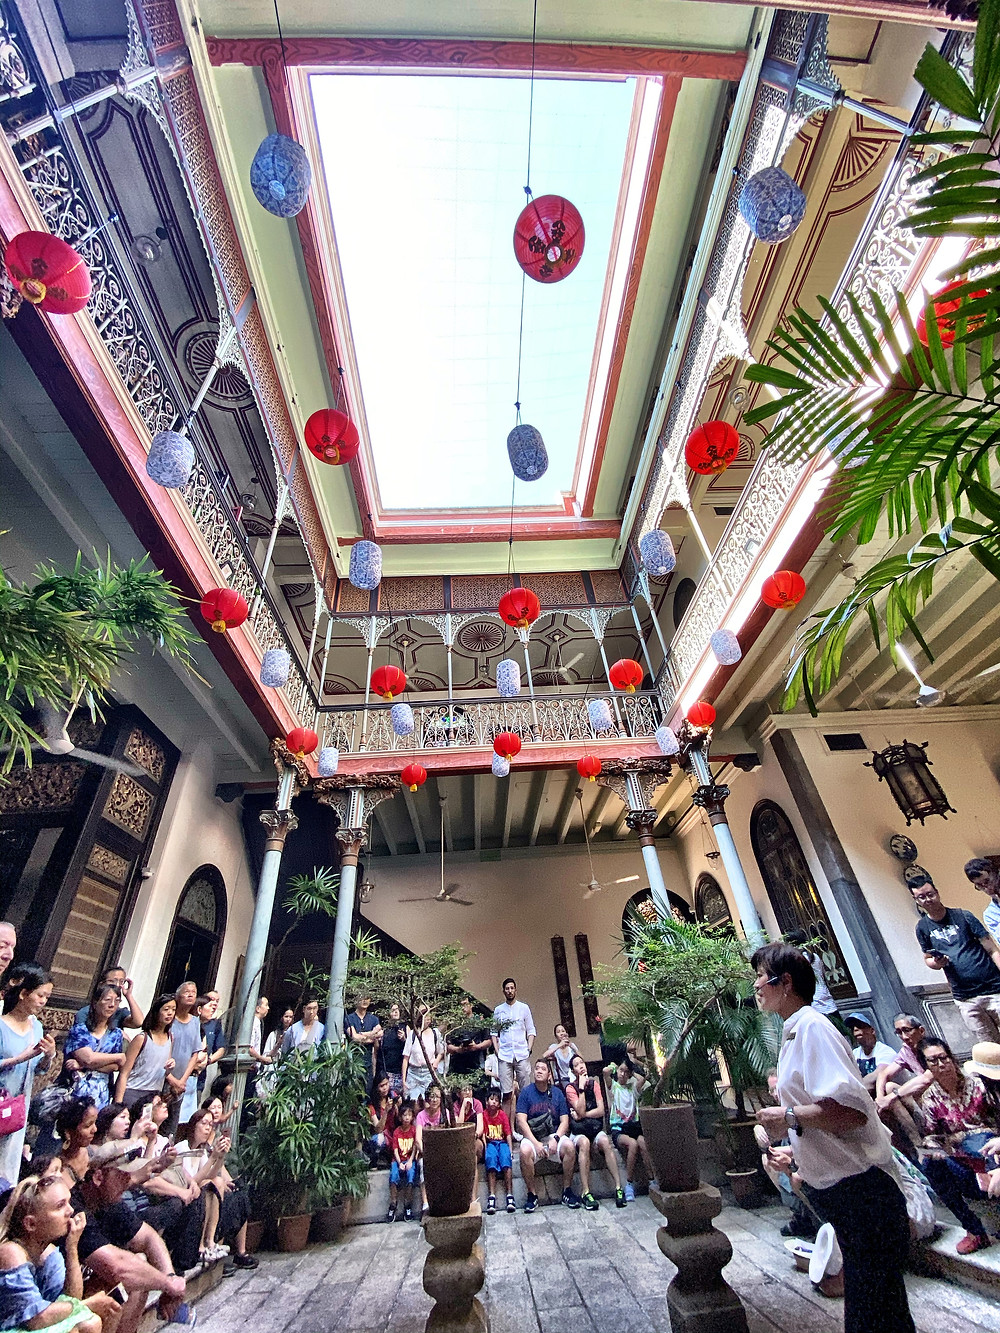 The interior courtyard of the Blue Mansion in George Town. The mah jong scene with Constance Wu and Michelle Yeoh was filmed here. This is a beautifully restored building that you can pay to tour and the lucky few can spend the night (in the hotel portion).